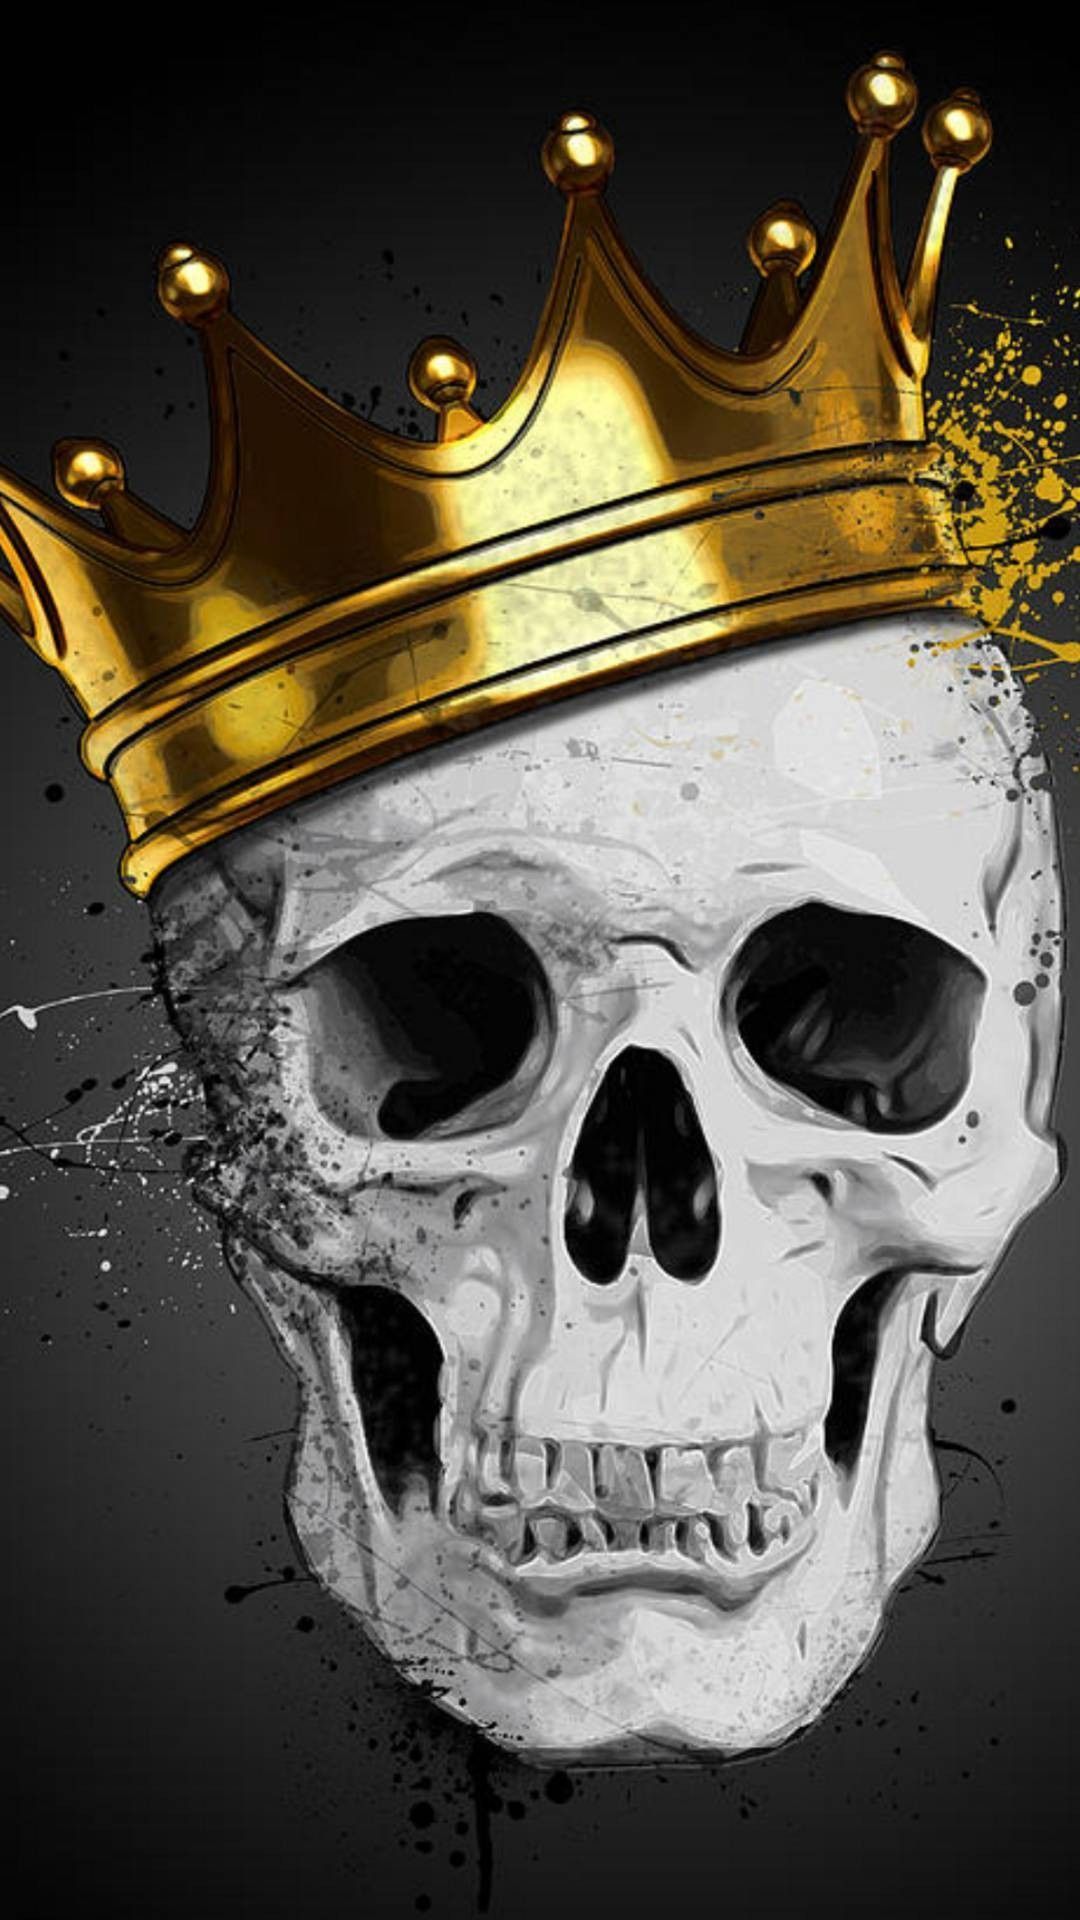 1080x1920 Your still always the king! | Funny | King, Wallpaper